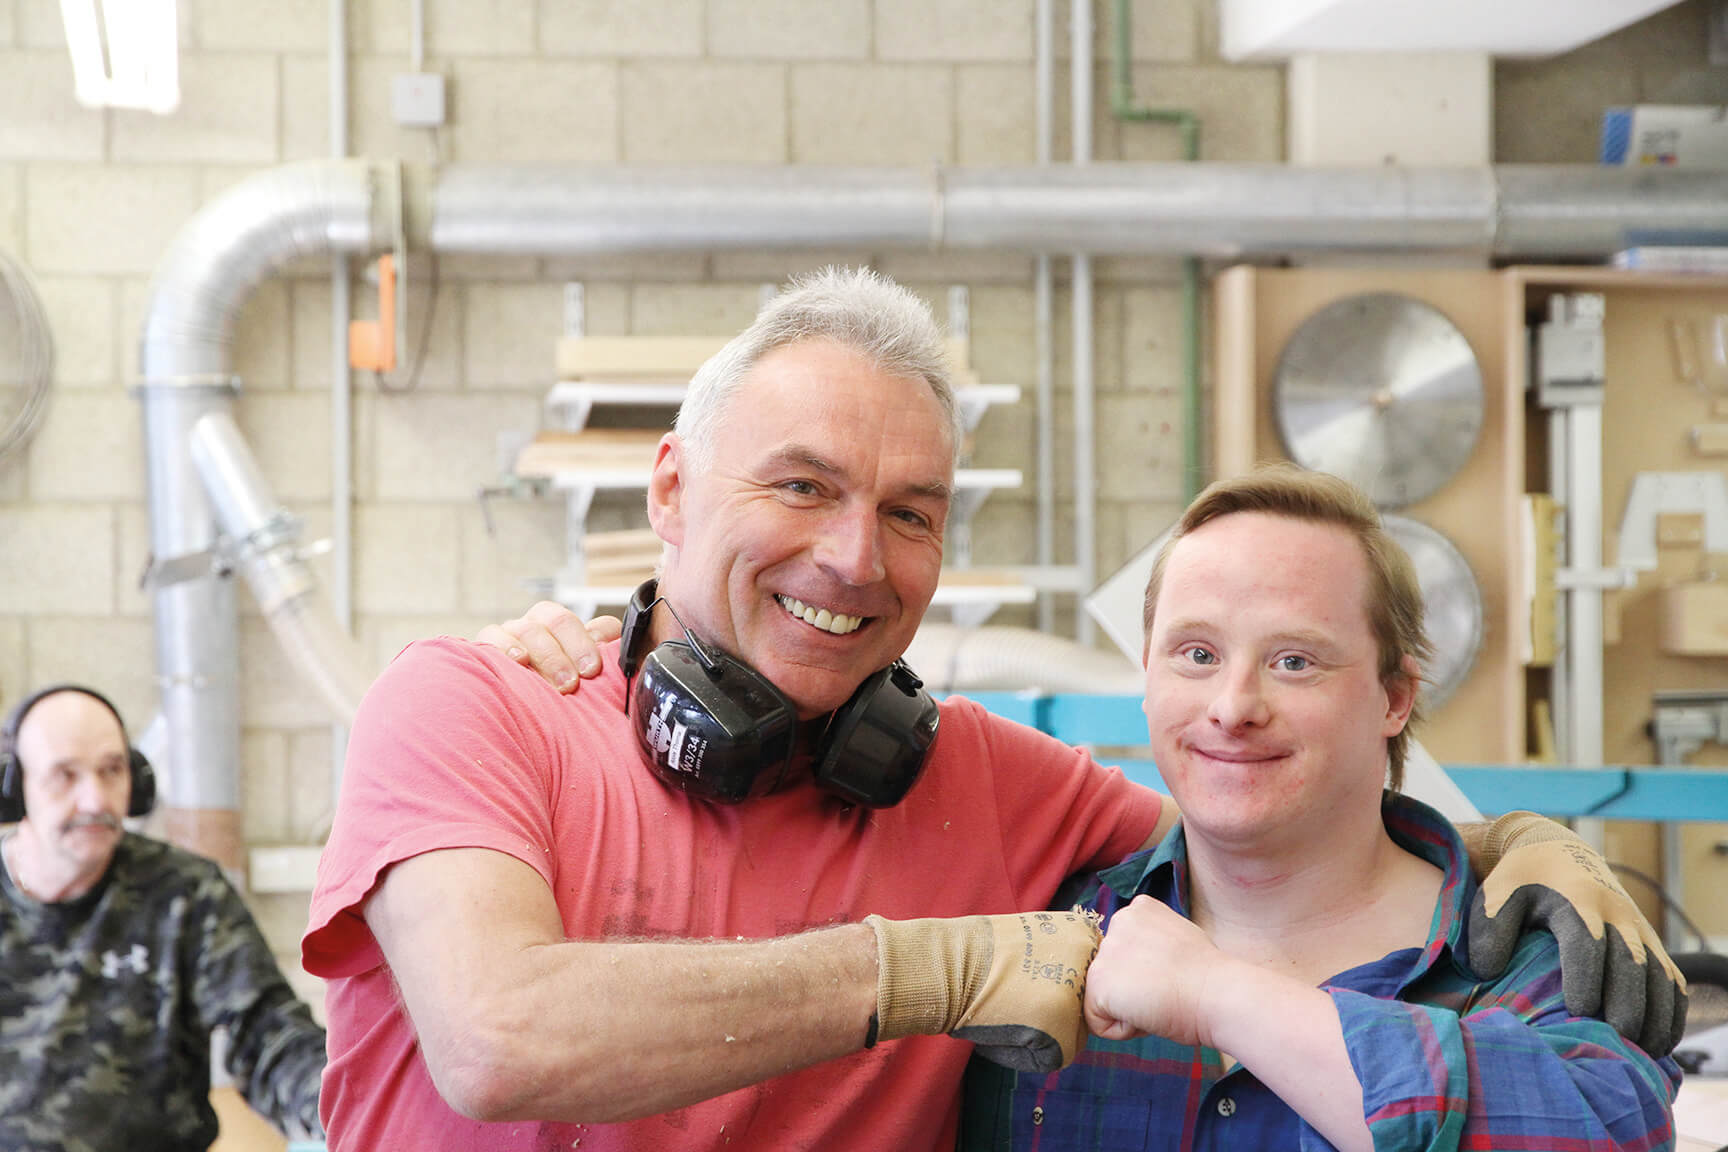 Two employees from Metalog Tools, which uses skilled workers with disabilities to make its award-winning and sustainable training tools